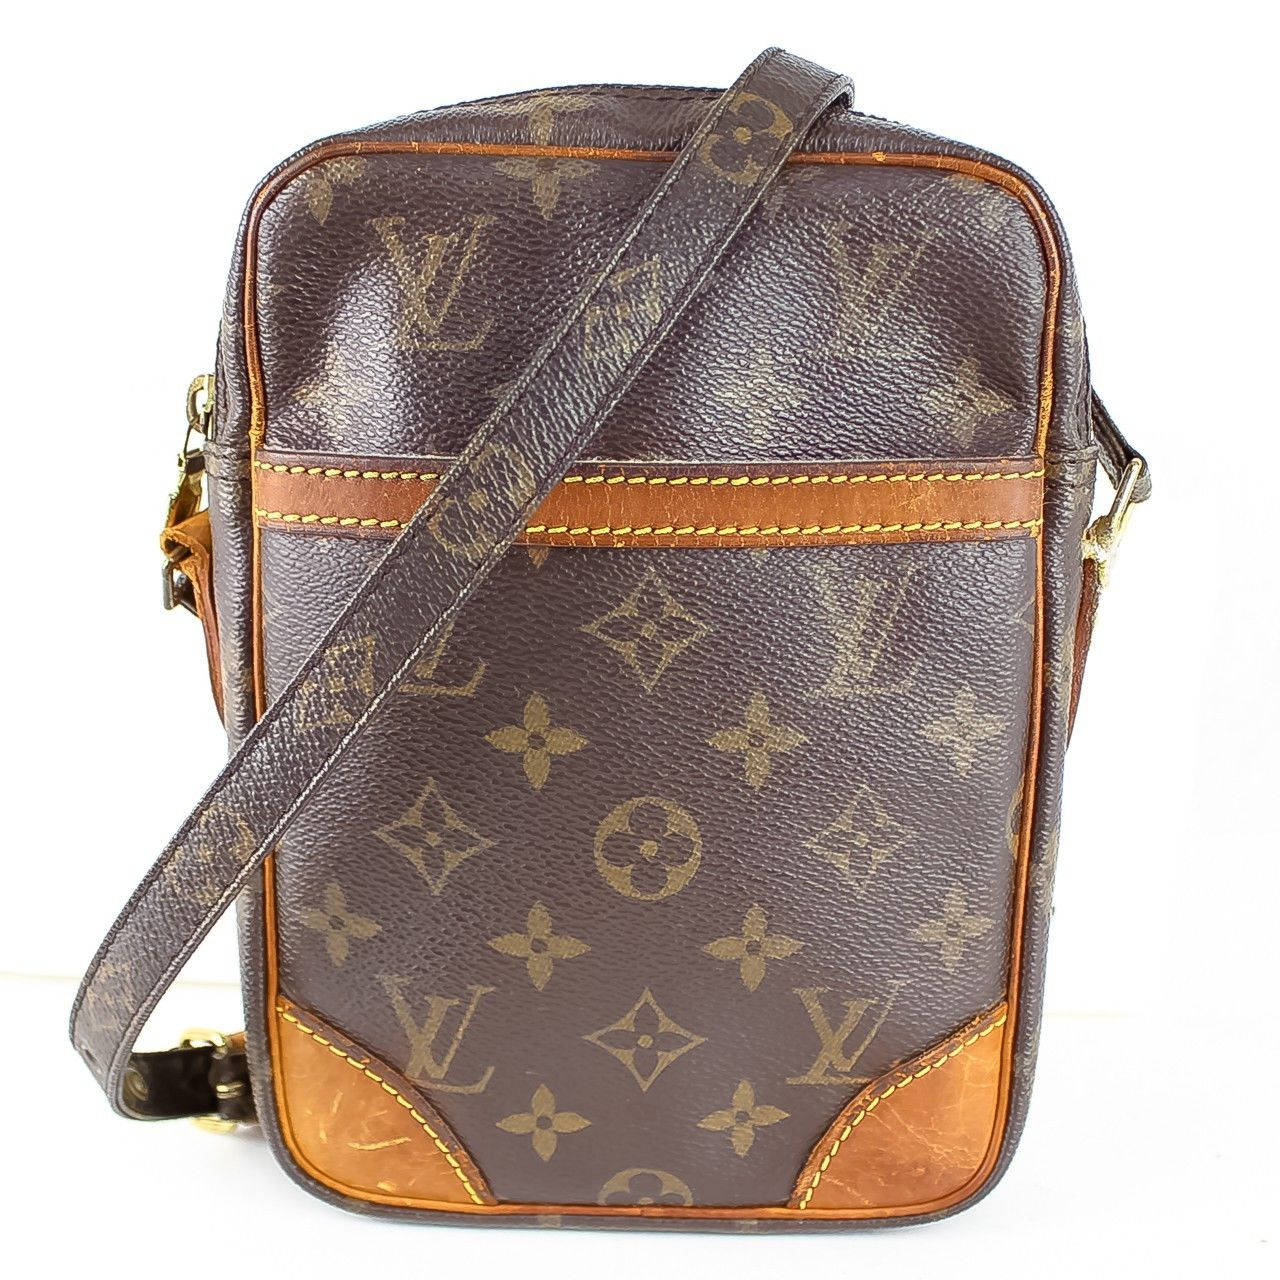 eec3d9fa8bea Authentic Louis Vuitton Danube Cross body Shoulder Bag Purse ...